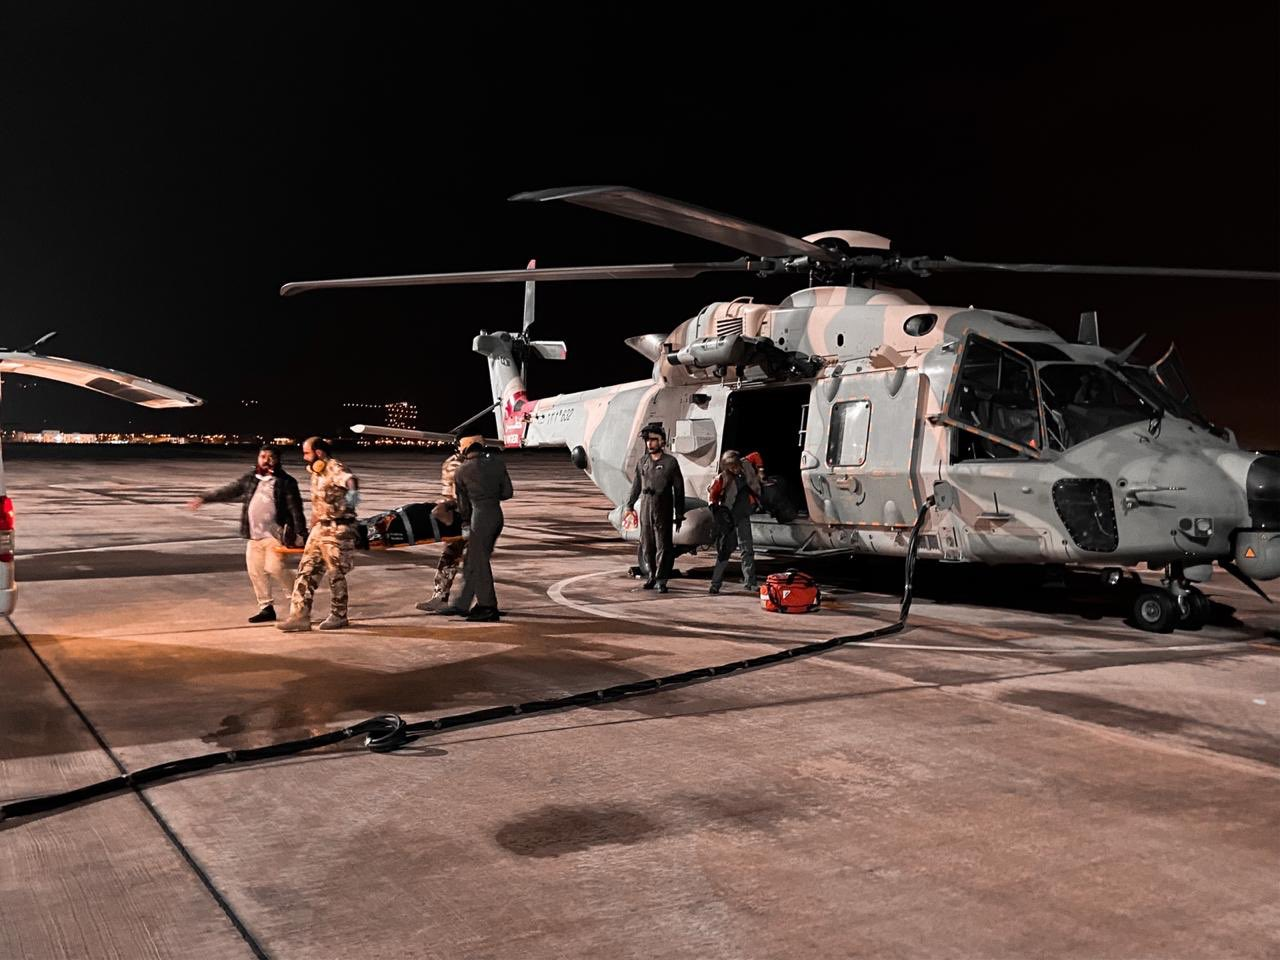 Expat in Oman rescued by air force